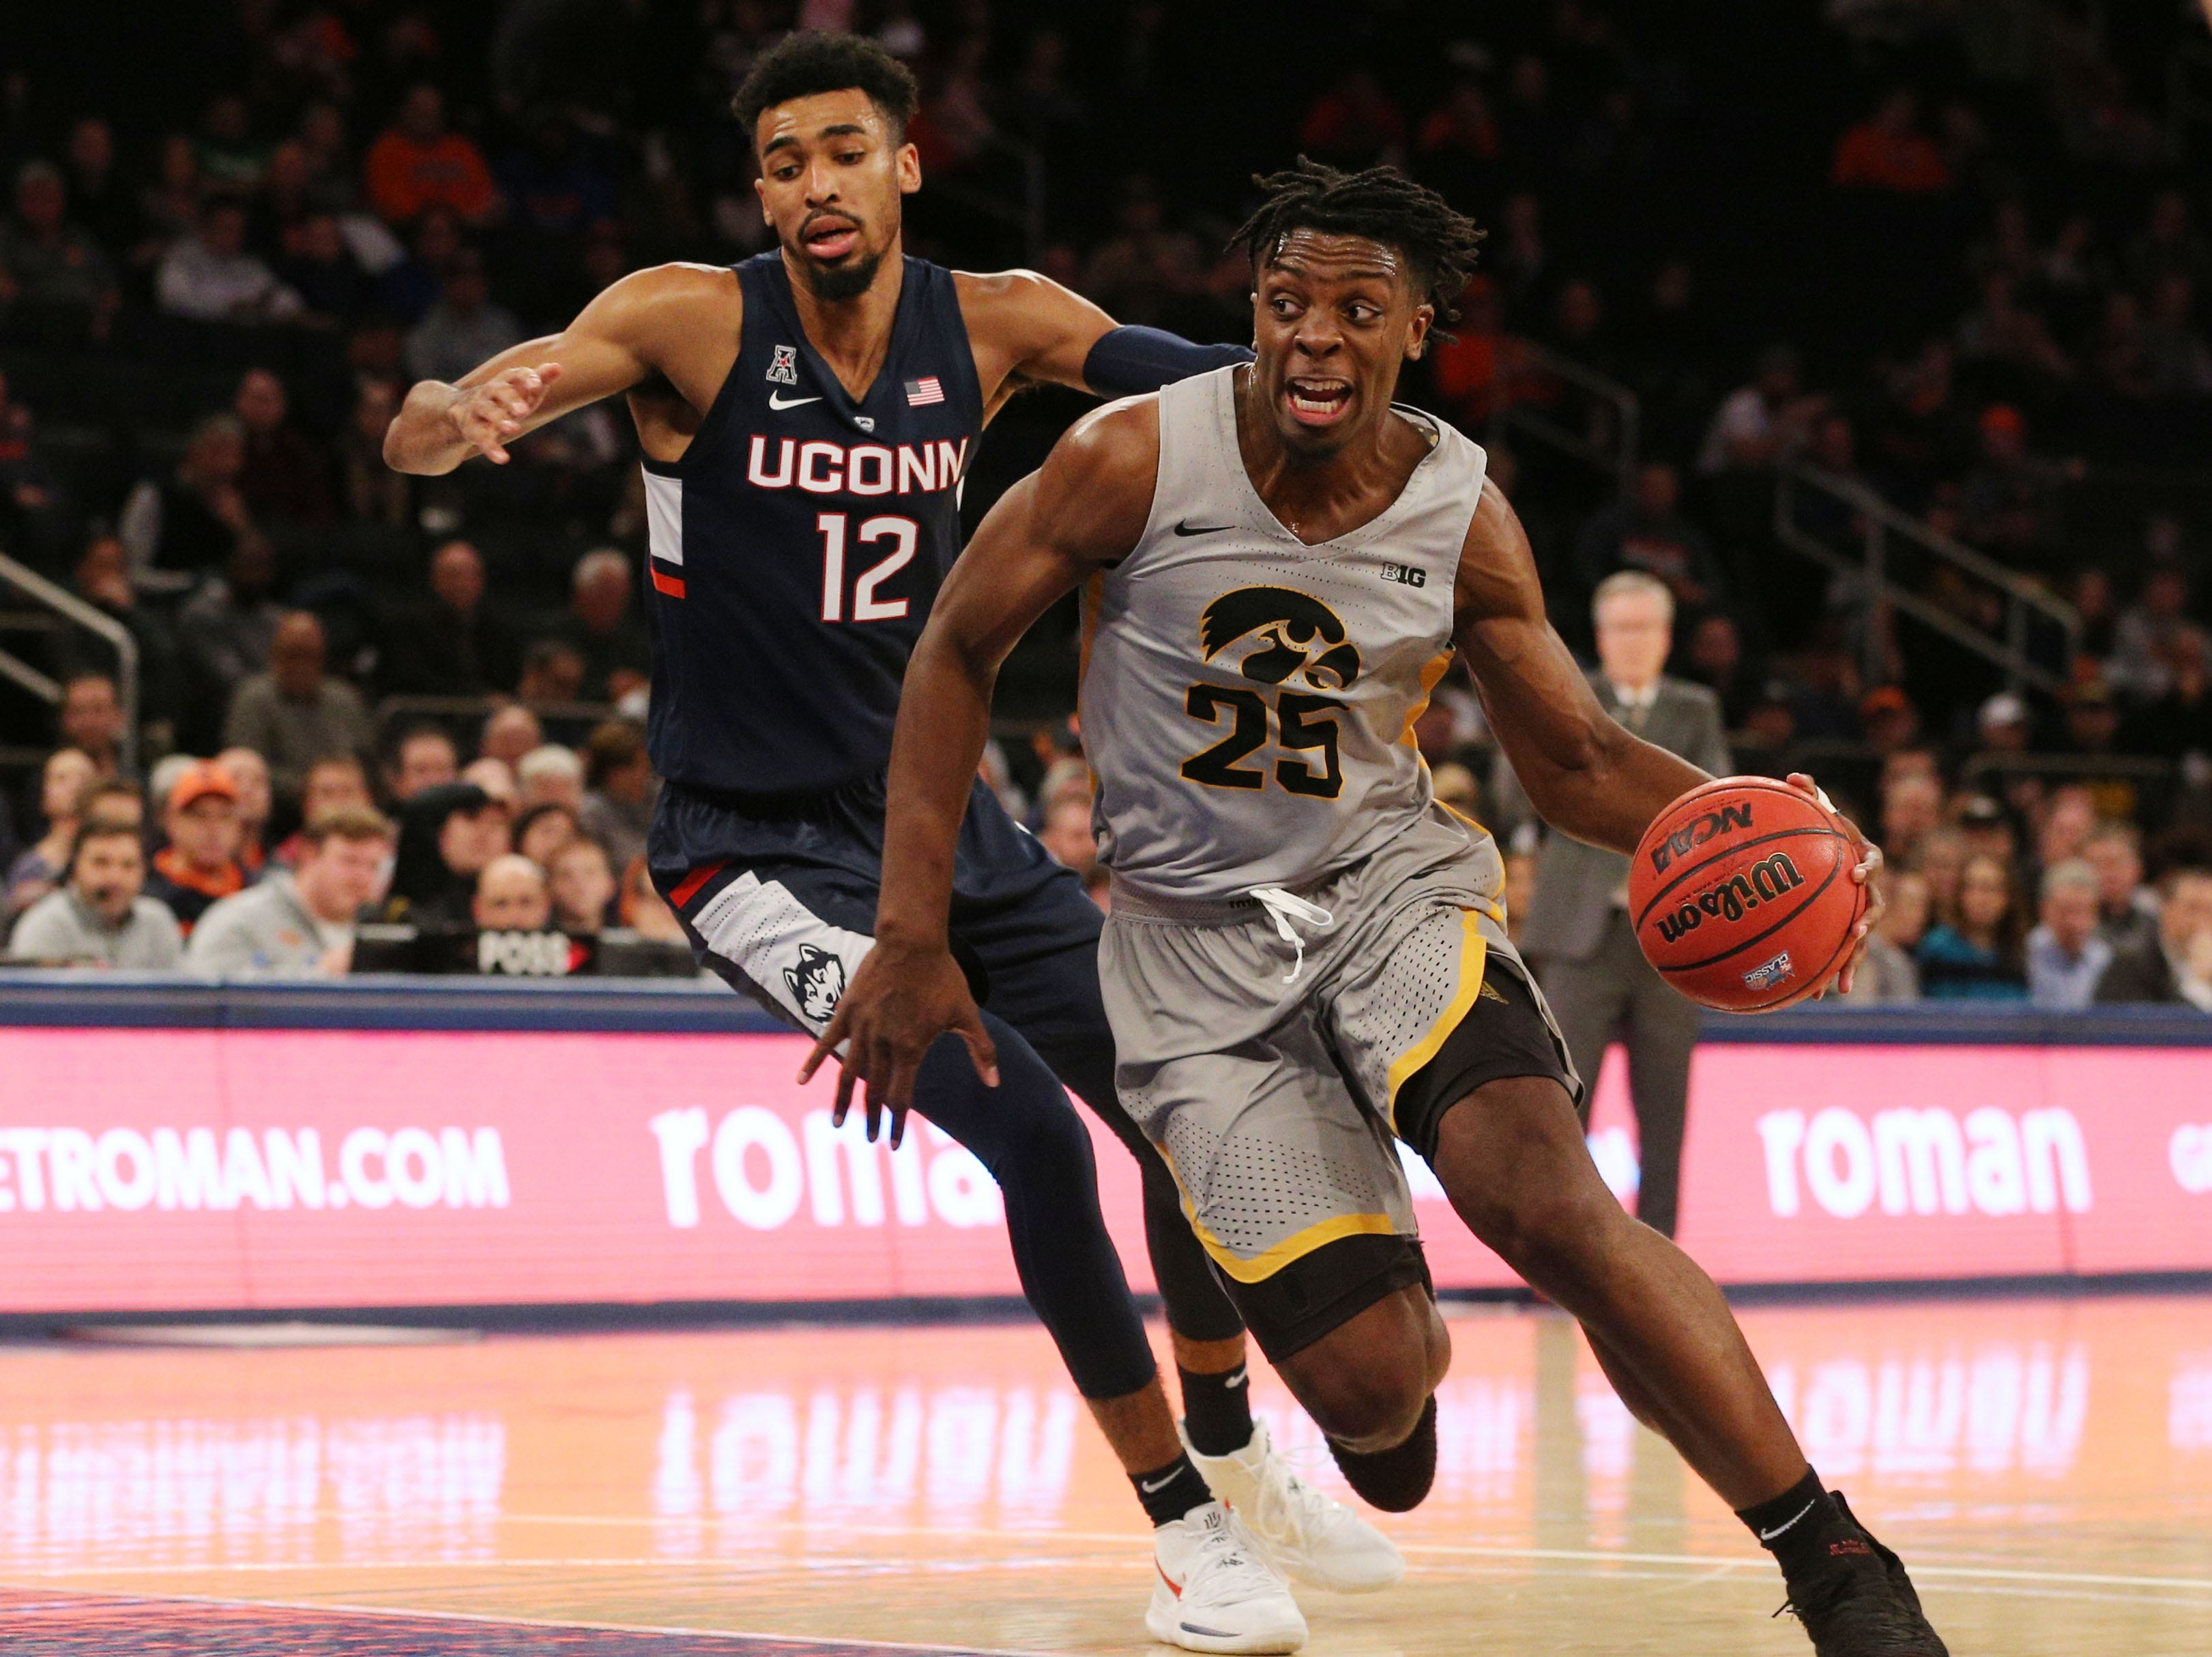 Nov 16, 2018; New York, NY, USA; Iowa Hawkeyes forward Tyler Cook (25) drives around Connecticut Huskies forward Tyler Polley (12) during the first half at Madison Square Garden. Mandatory Credit: Brad Penner-USA TODAY Sports